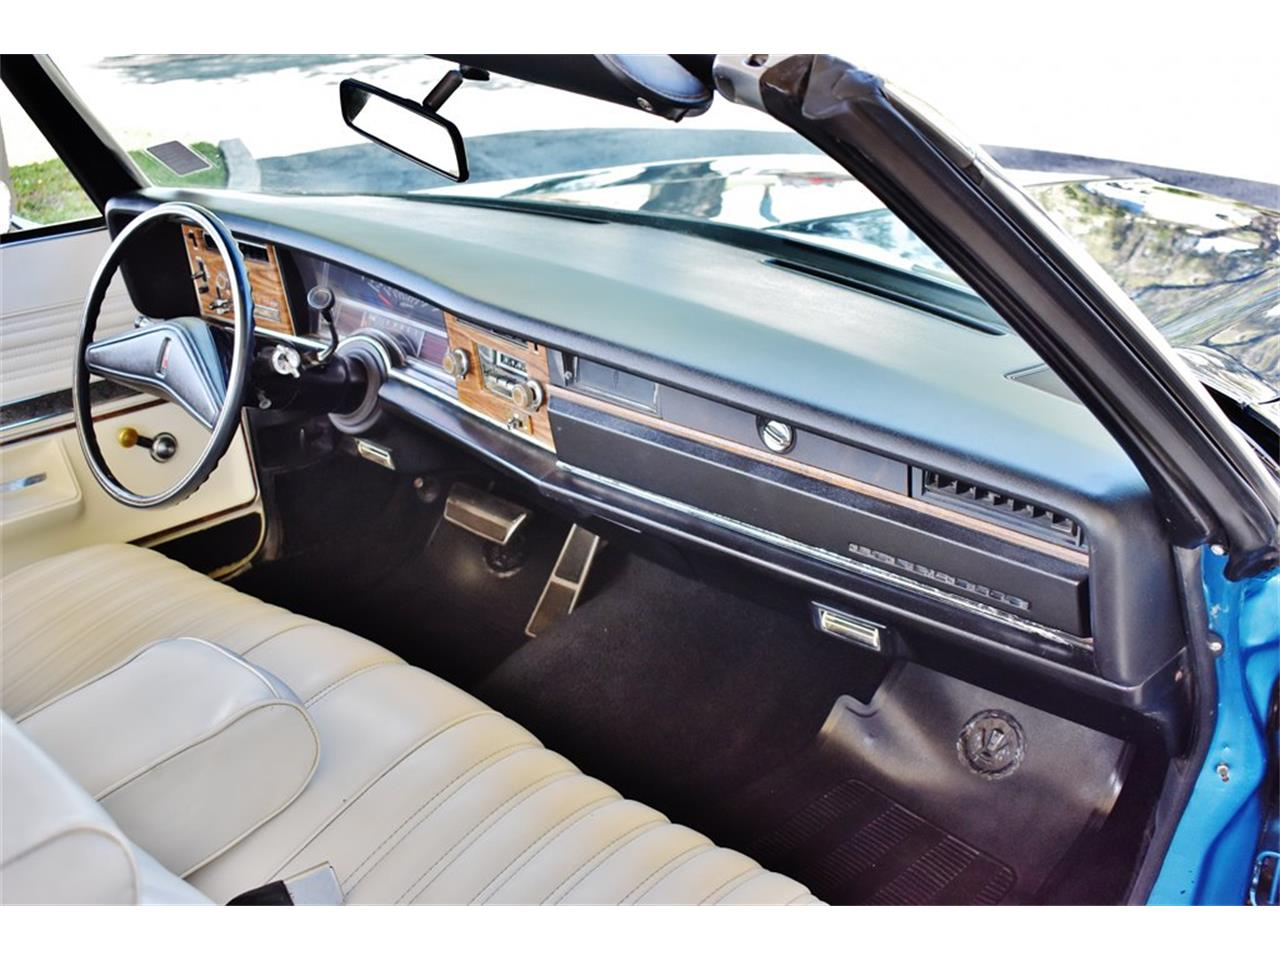 Large Picture of 1975 Oldsmobile Delta 88 located in Lakeland Florida - $24,900.00 - PKMX